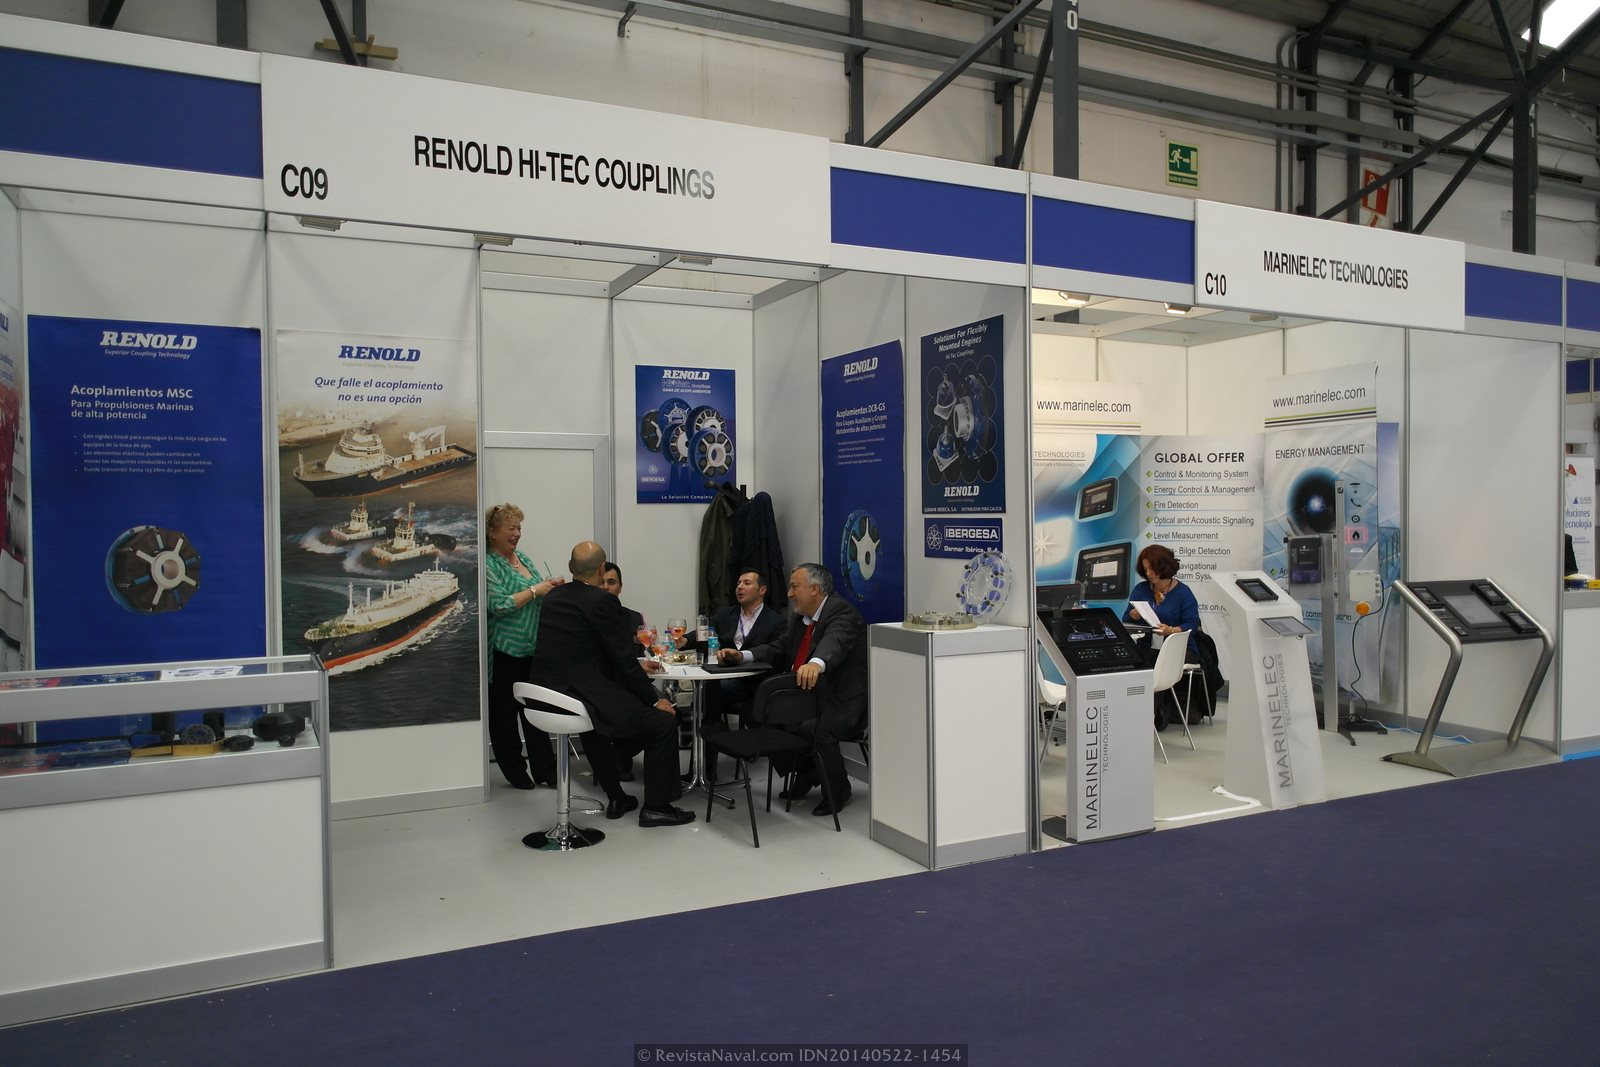 Estands de Renold Hi-Tec Couplings y Marinelec Technologies (Foto: Revista Naval)